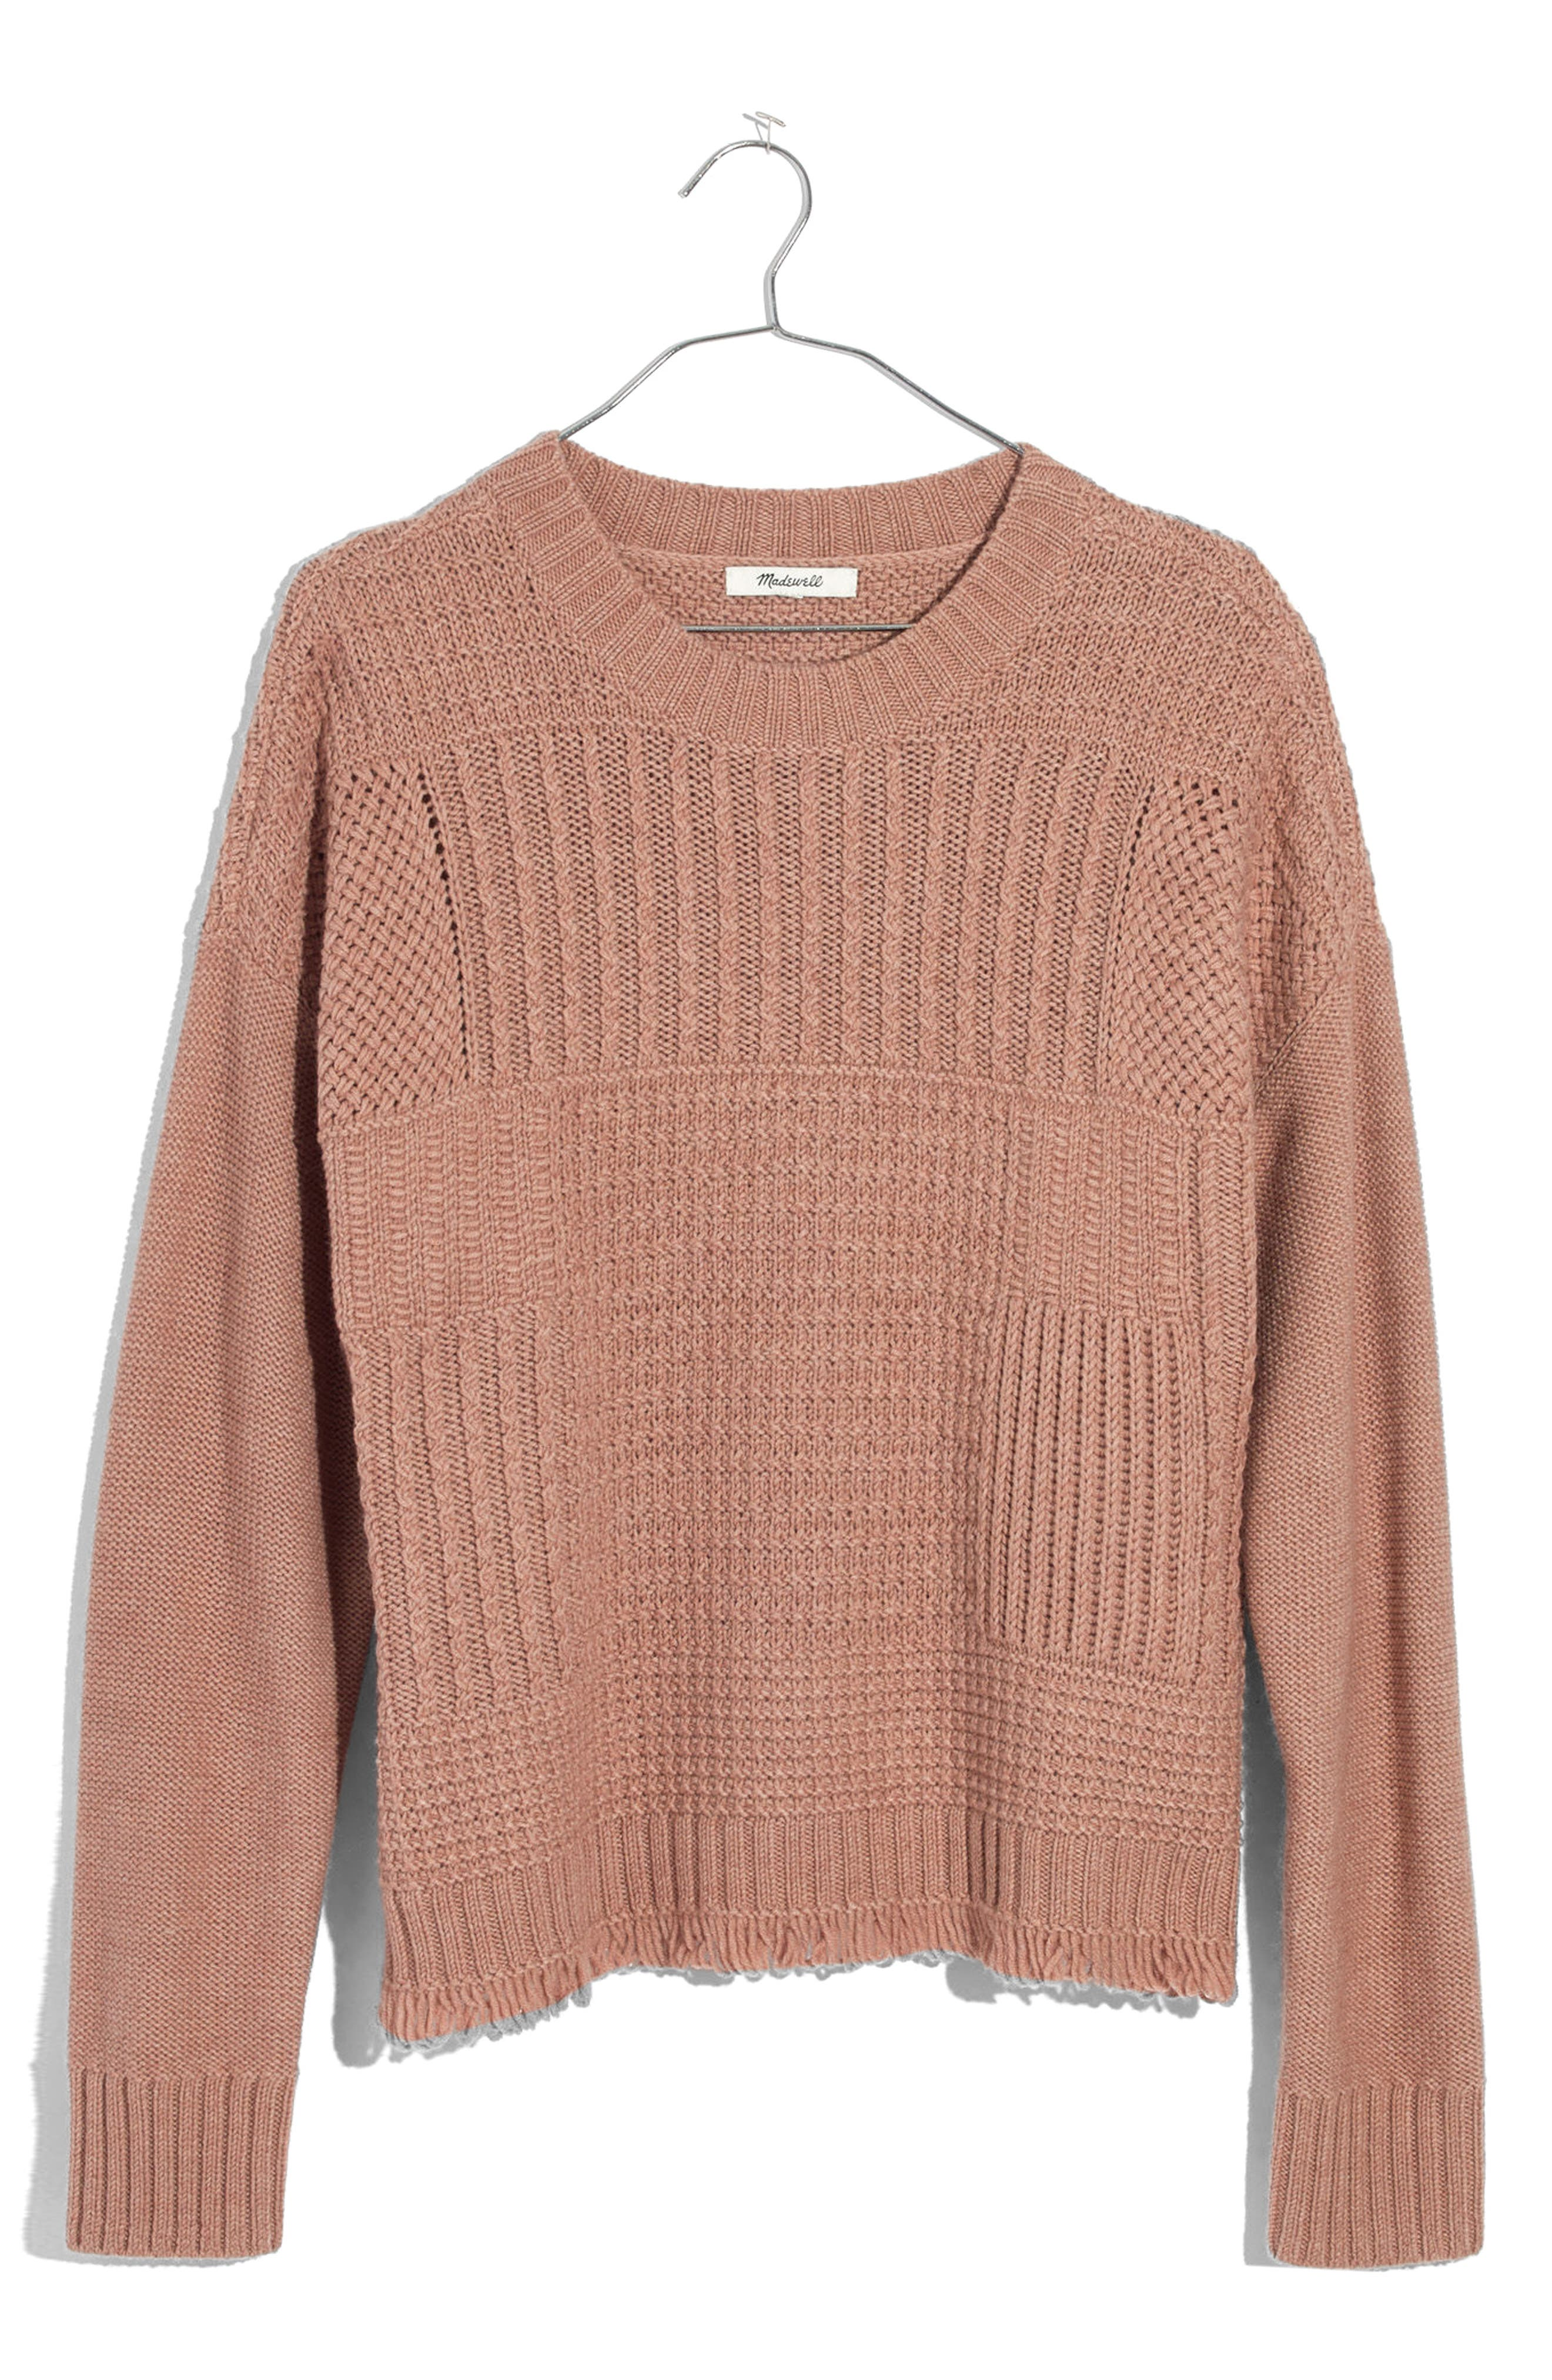 Madewell Stitchmix Pullover